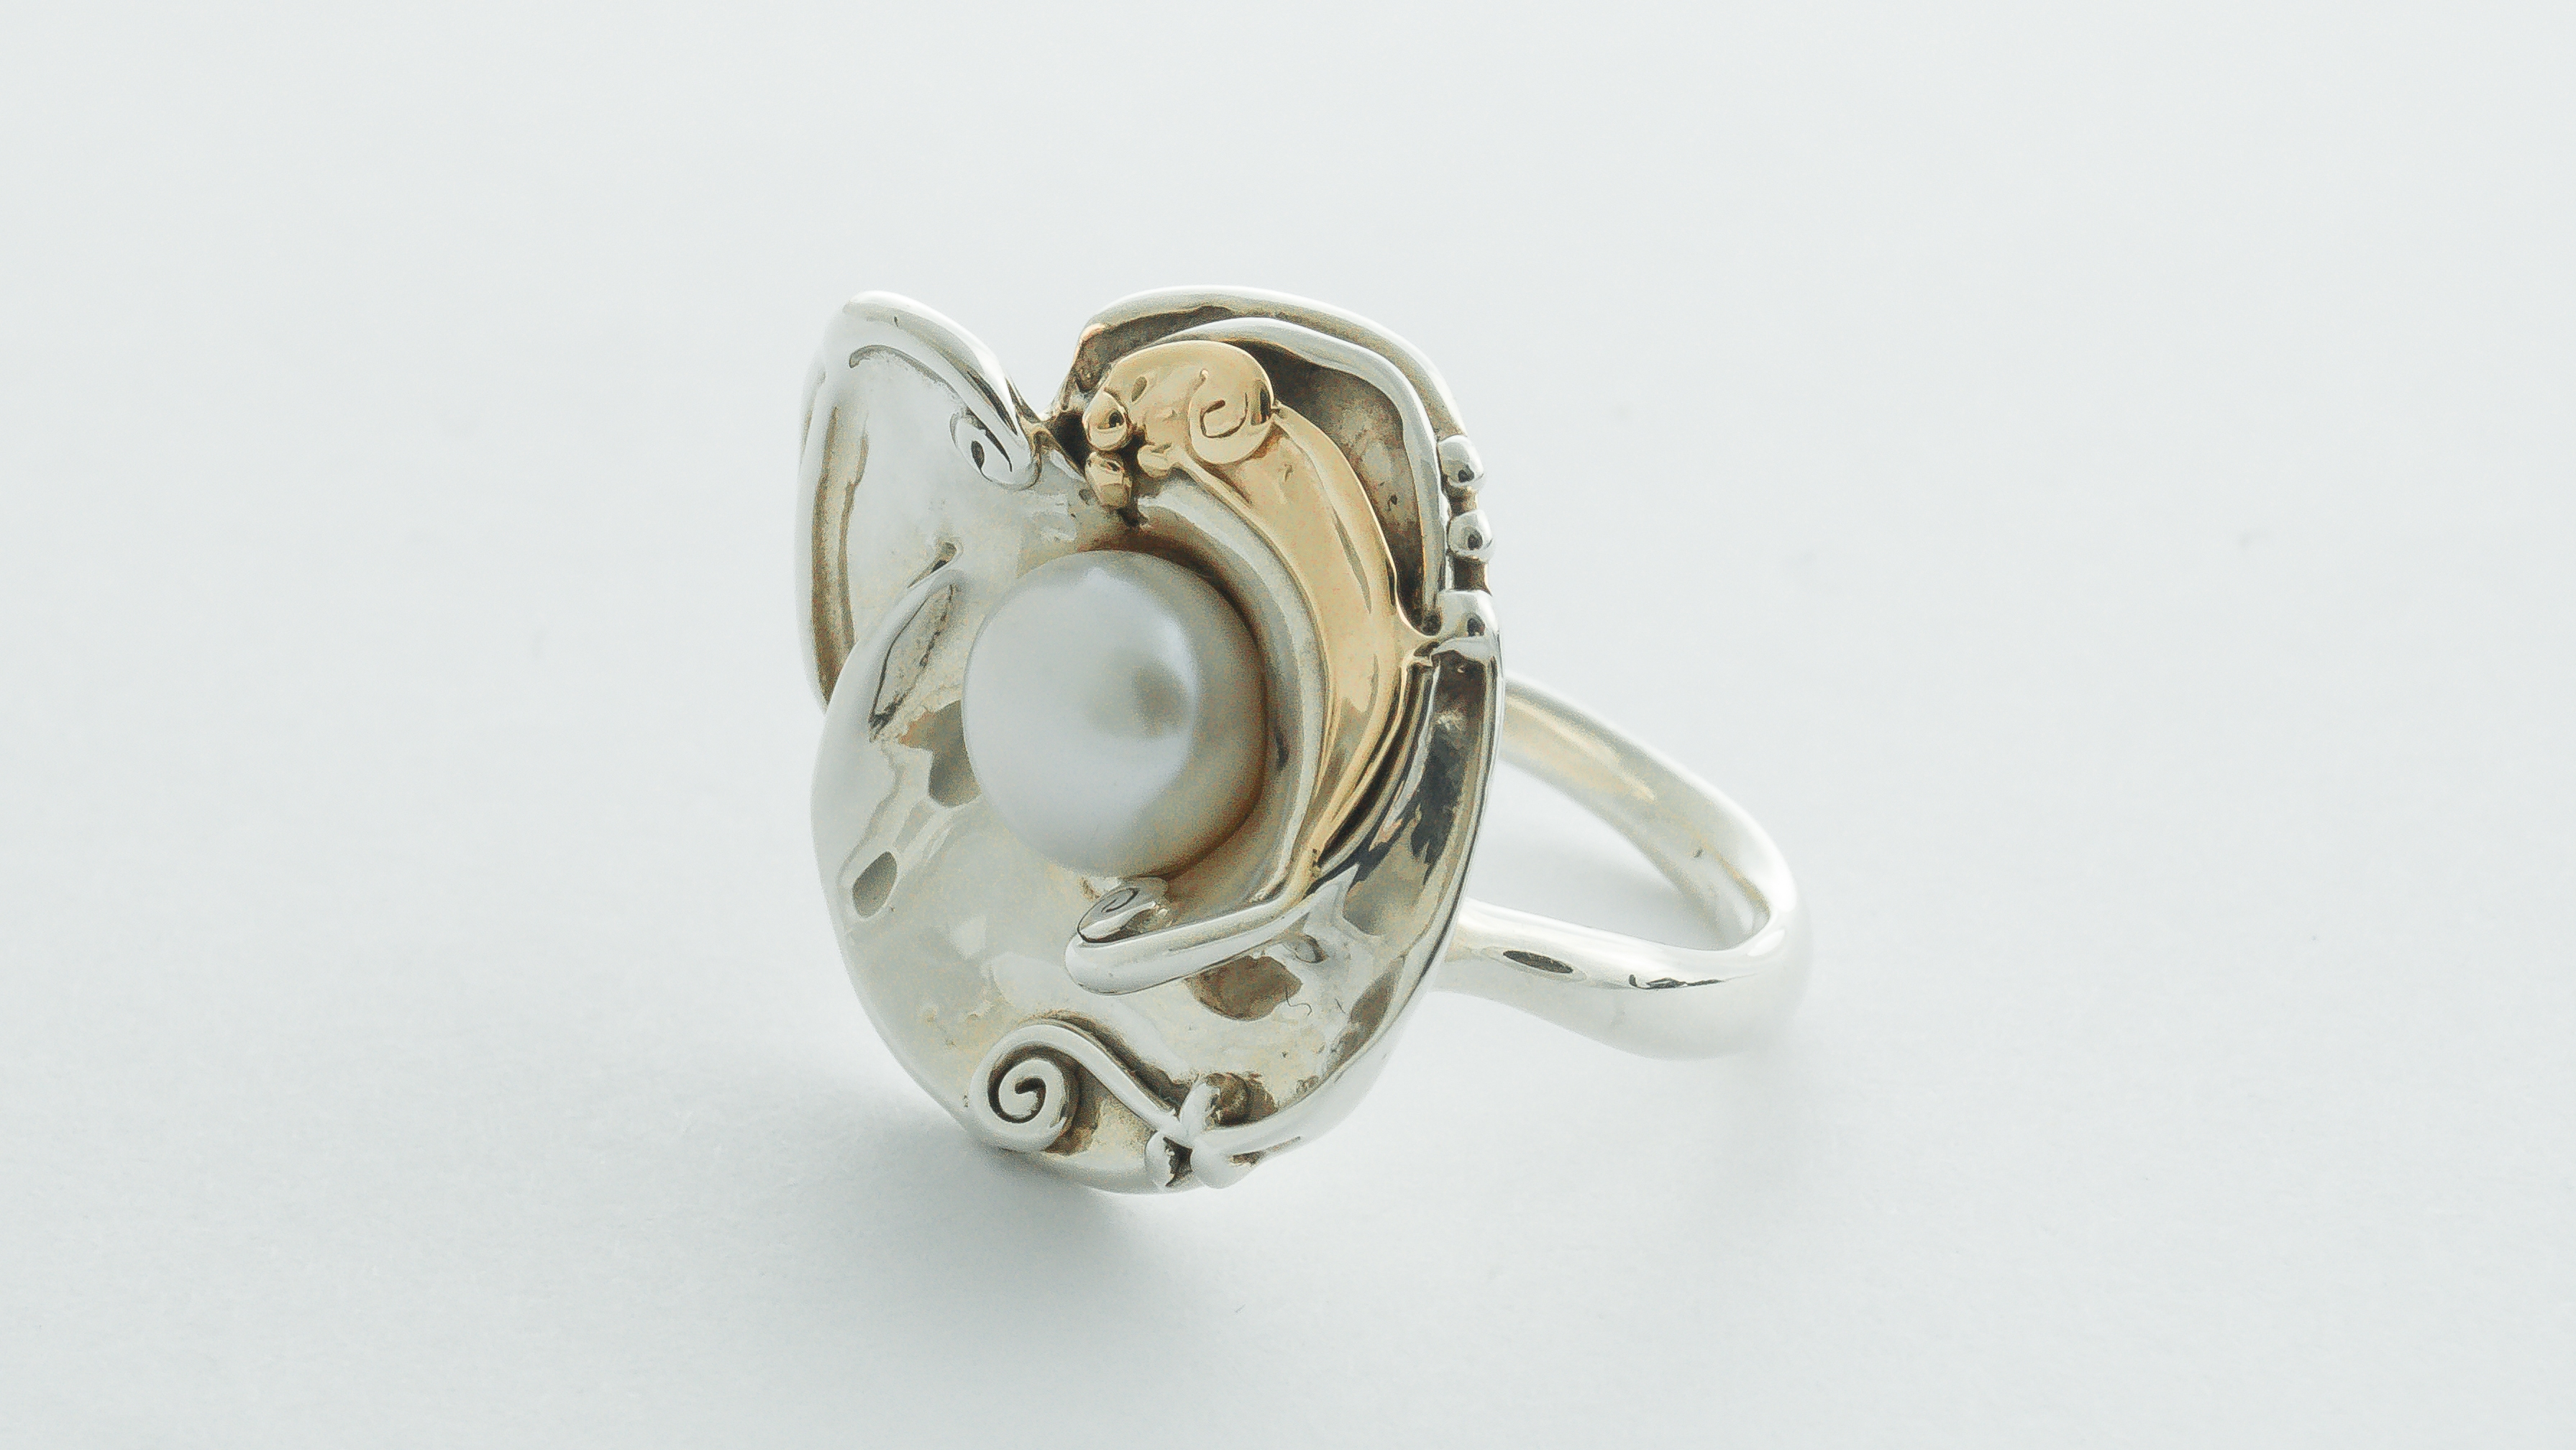 Silver Hagit Gorali ring with gold and freshwater pearl in Ipswich, Suffolk